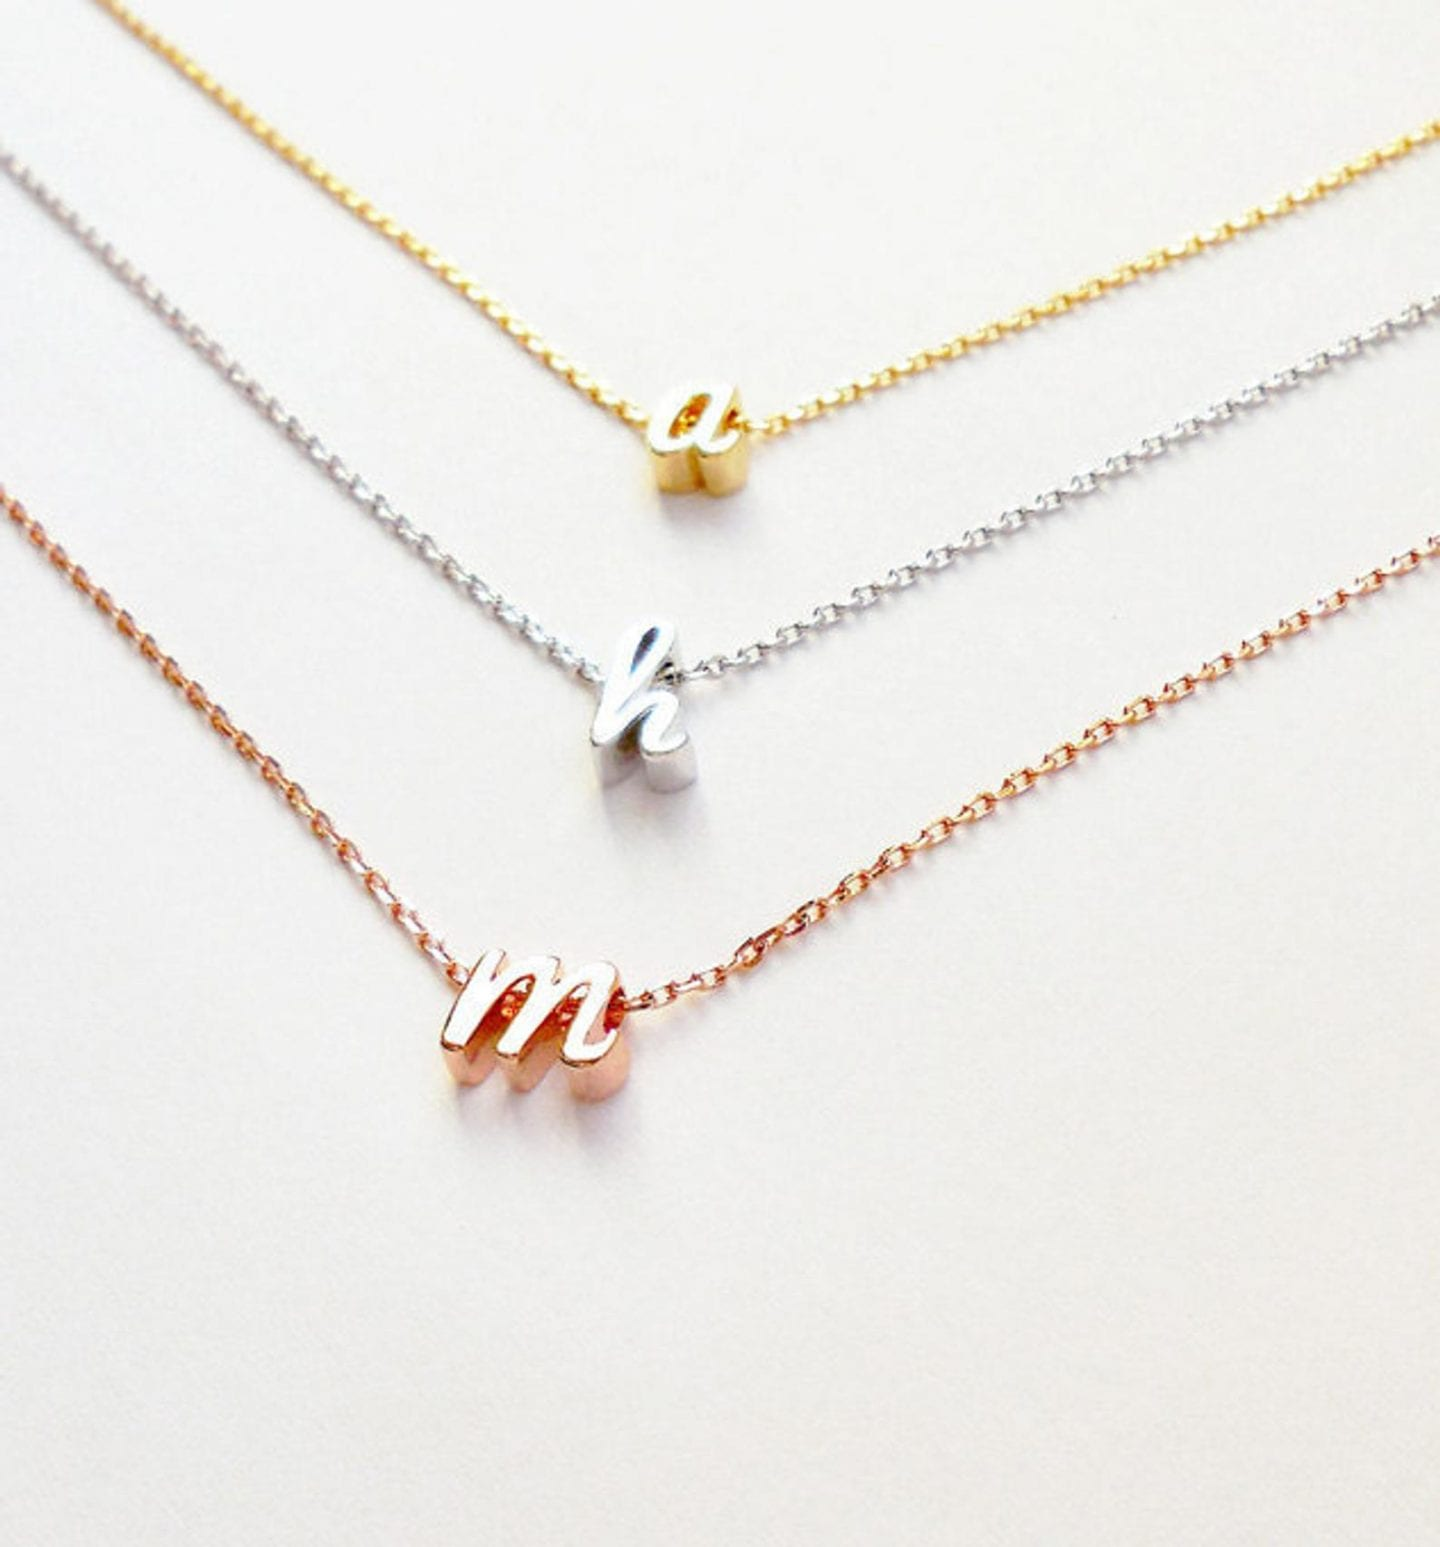 Initial Jewelry by popular San Francisco fashion blog, Just Add Glam: image of a tiny initial letter necklace.